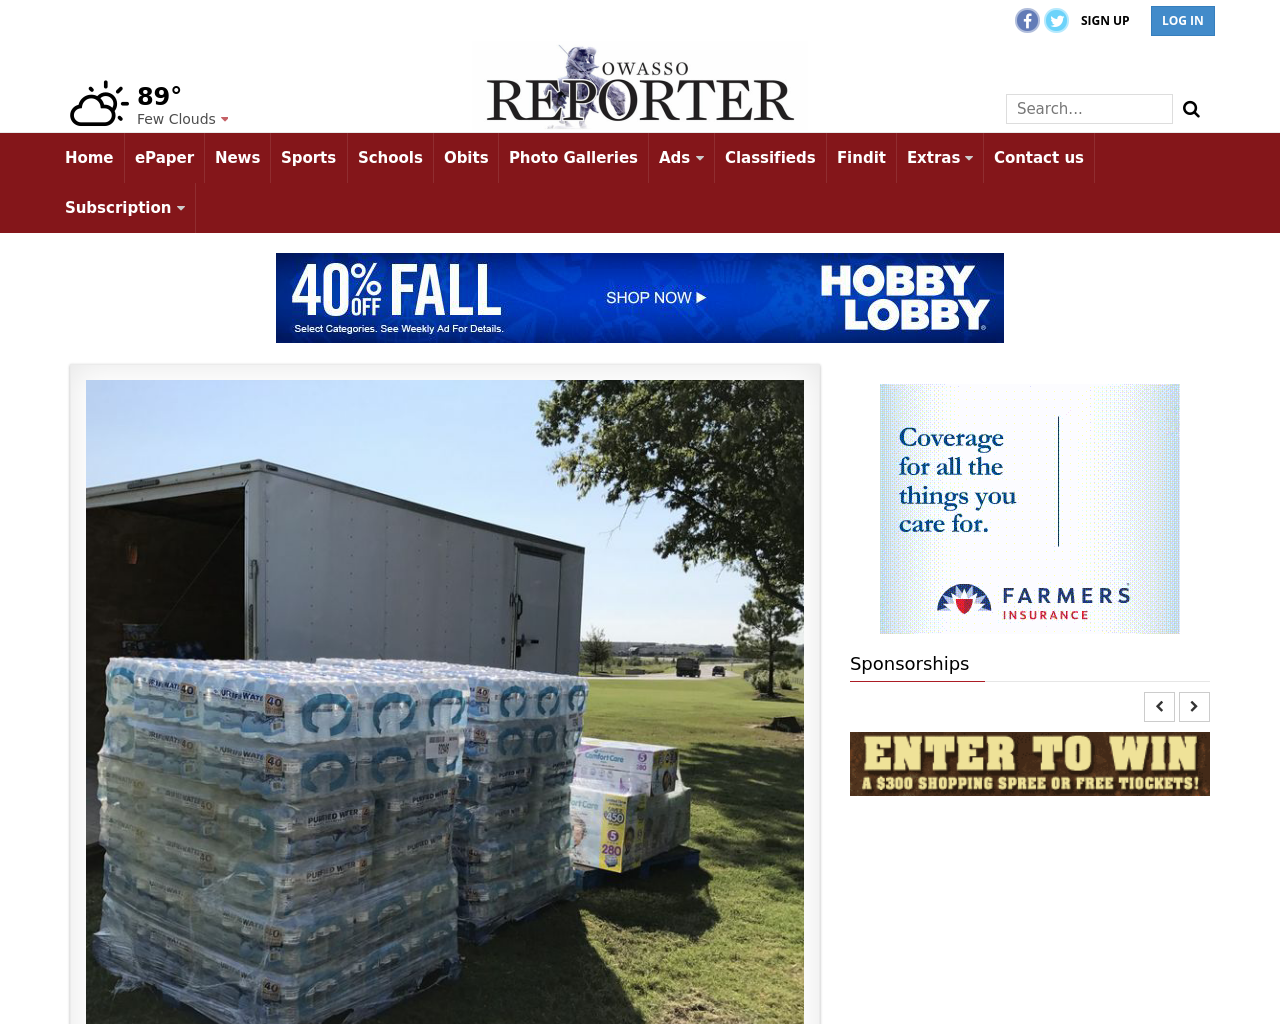 Owasso-Reporter-Advertising-Reviews-Pricing